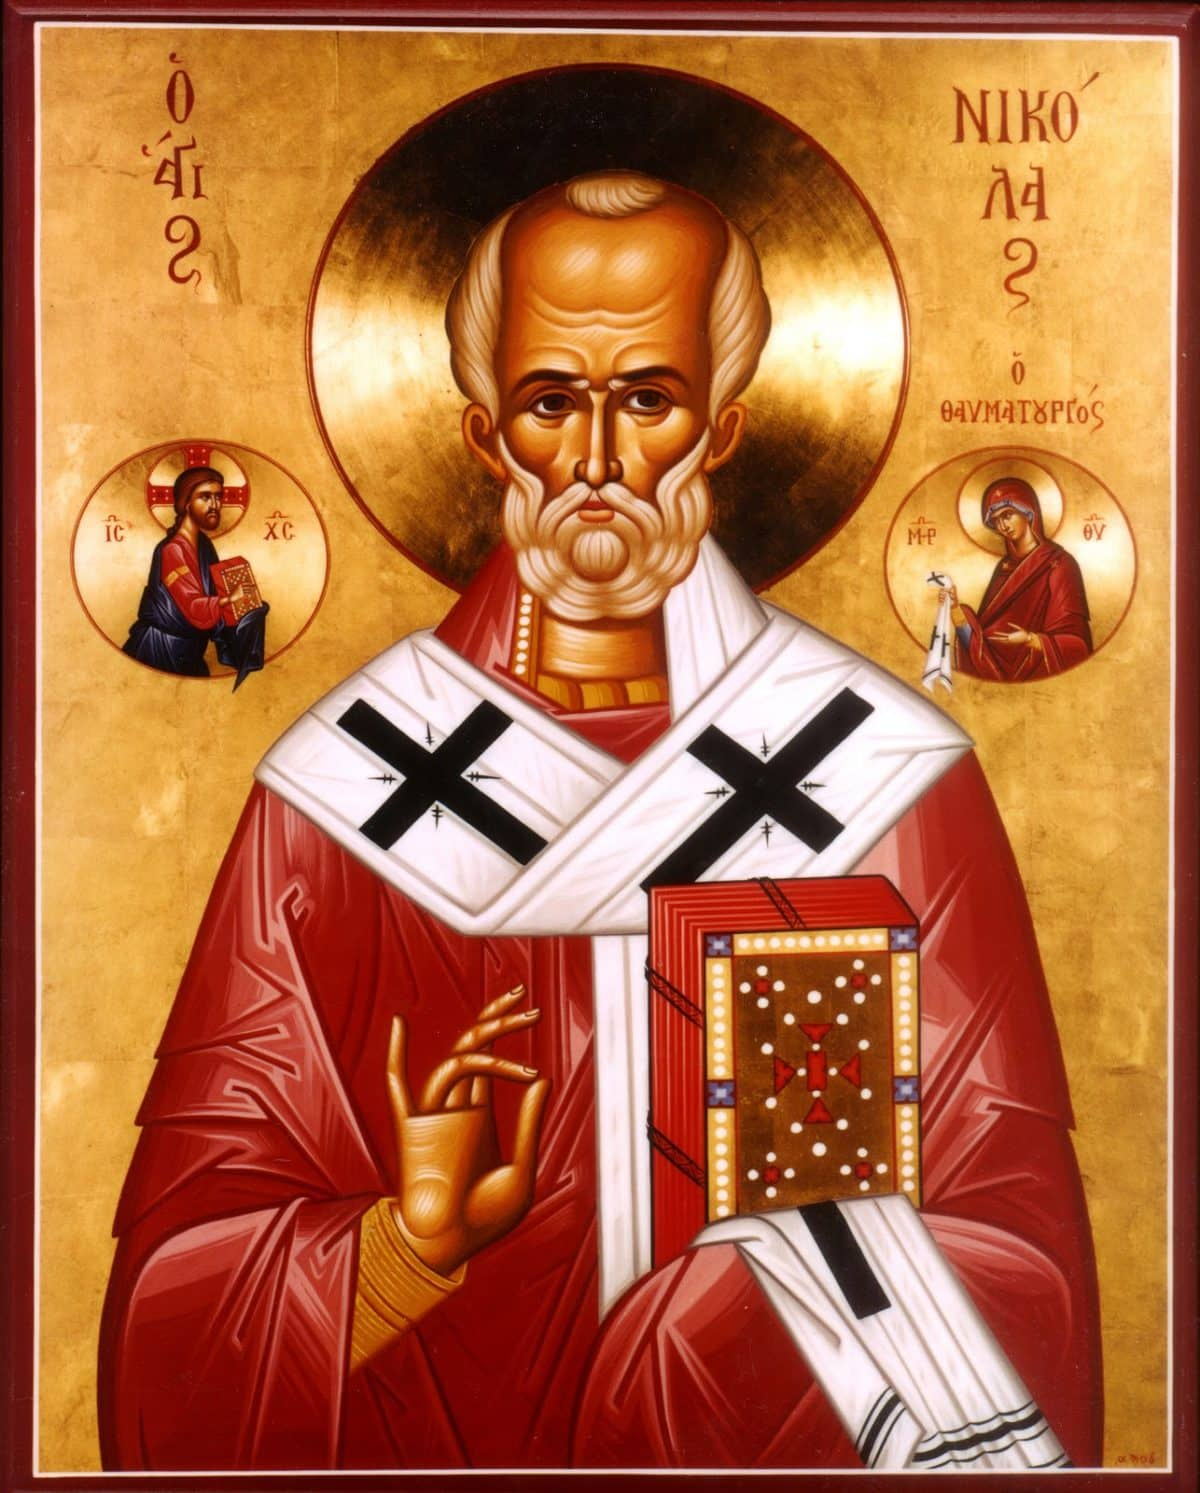 Tradition Of Saint Nicholas >> St Nicholas: He Who Punches Heretics in the Face (and Gives Gifts to Children) - Taylor Marshall